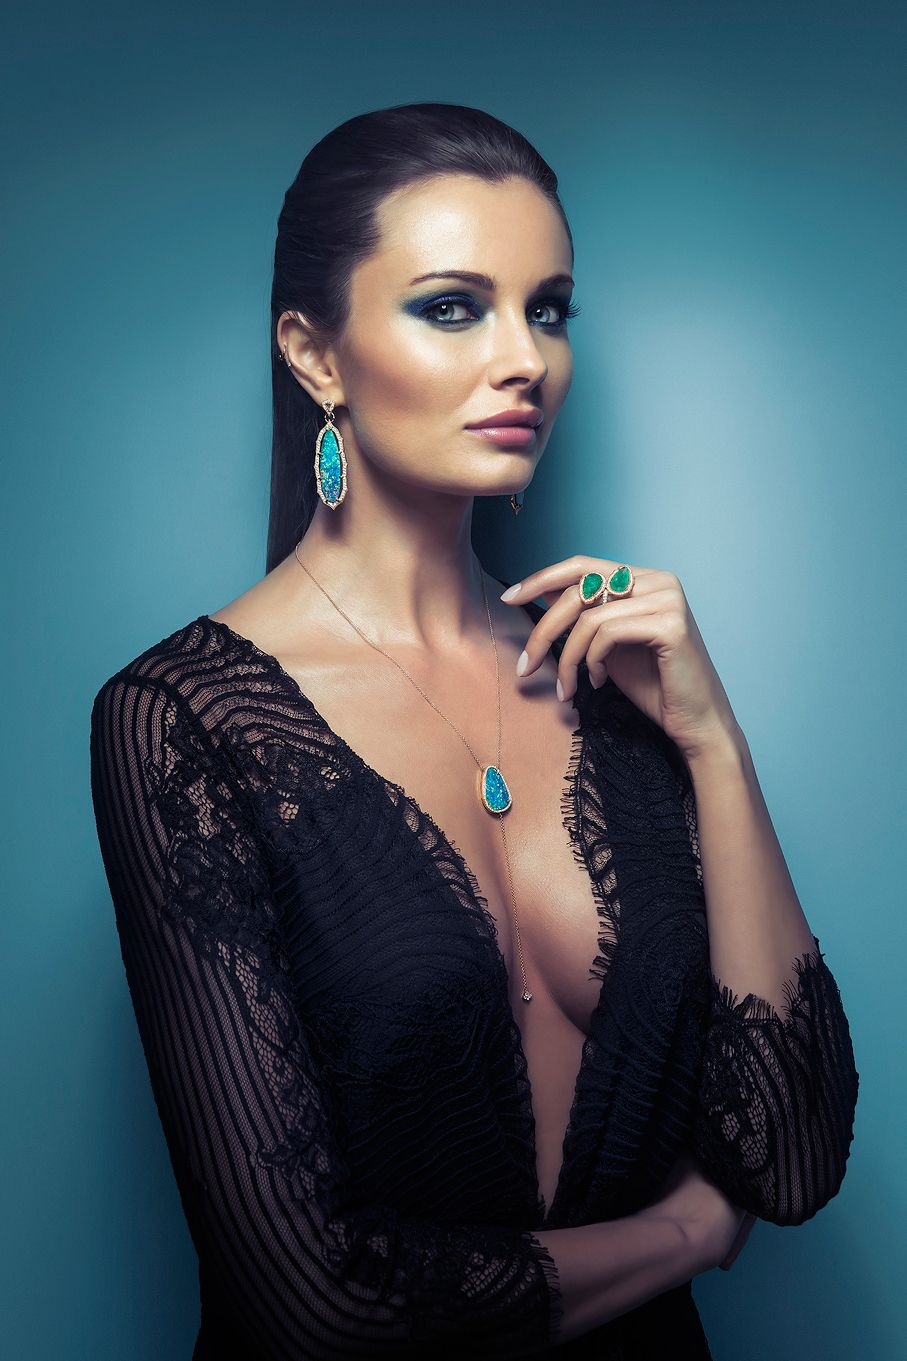 michael_grecco_photgraphy_jewerly1.jpg